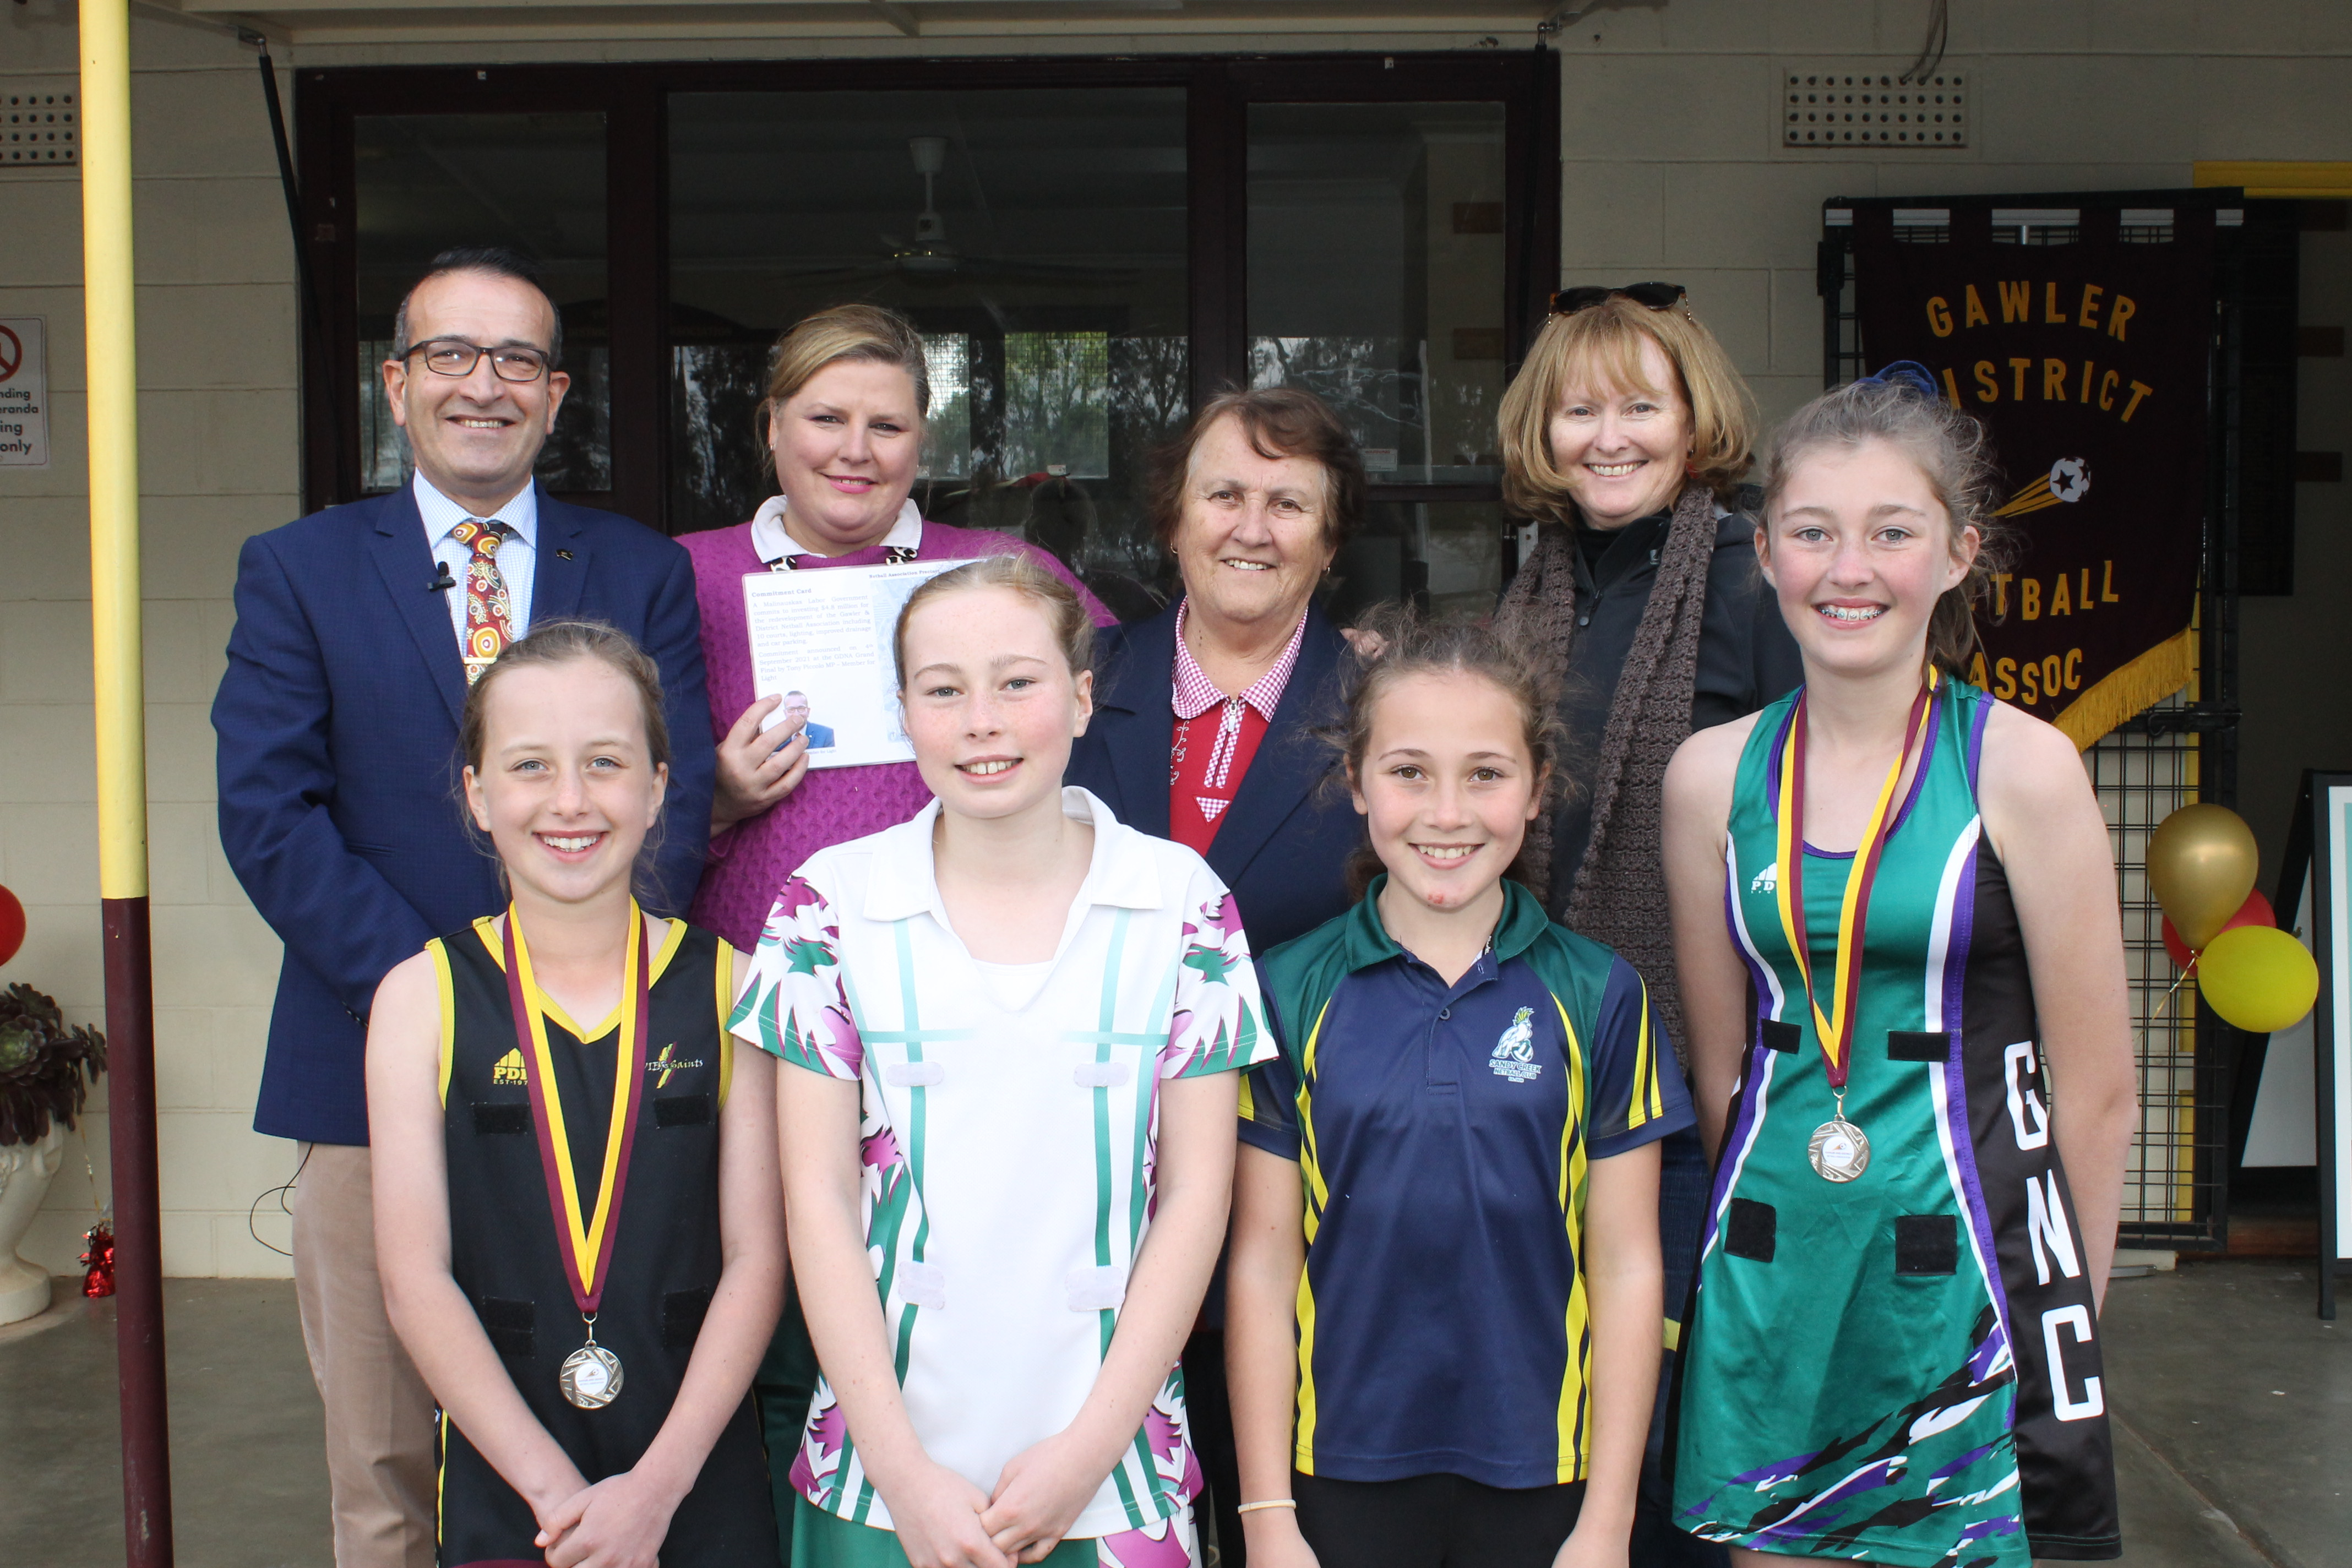 Photo: at the announcement were: (Back Row) Member for Light Tony Piccolo, GDNA President Kylie Forby, Patron Mrs Yolanda Cannizarro, and Gawler Mayor Karen Redman. (Front Row) (from left) Pippa Batki (Xavier Saints), Alice Costigan (Virginia), Ayla Beaucaris (Sandy Creek) and Haley Cornwall (Gumnuts).